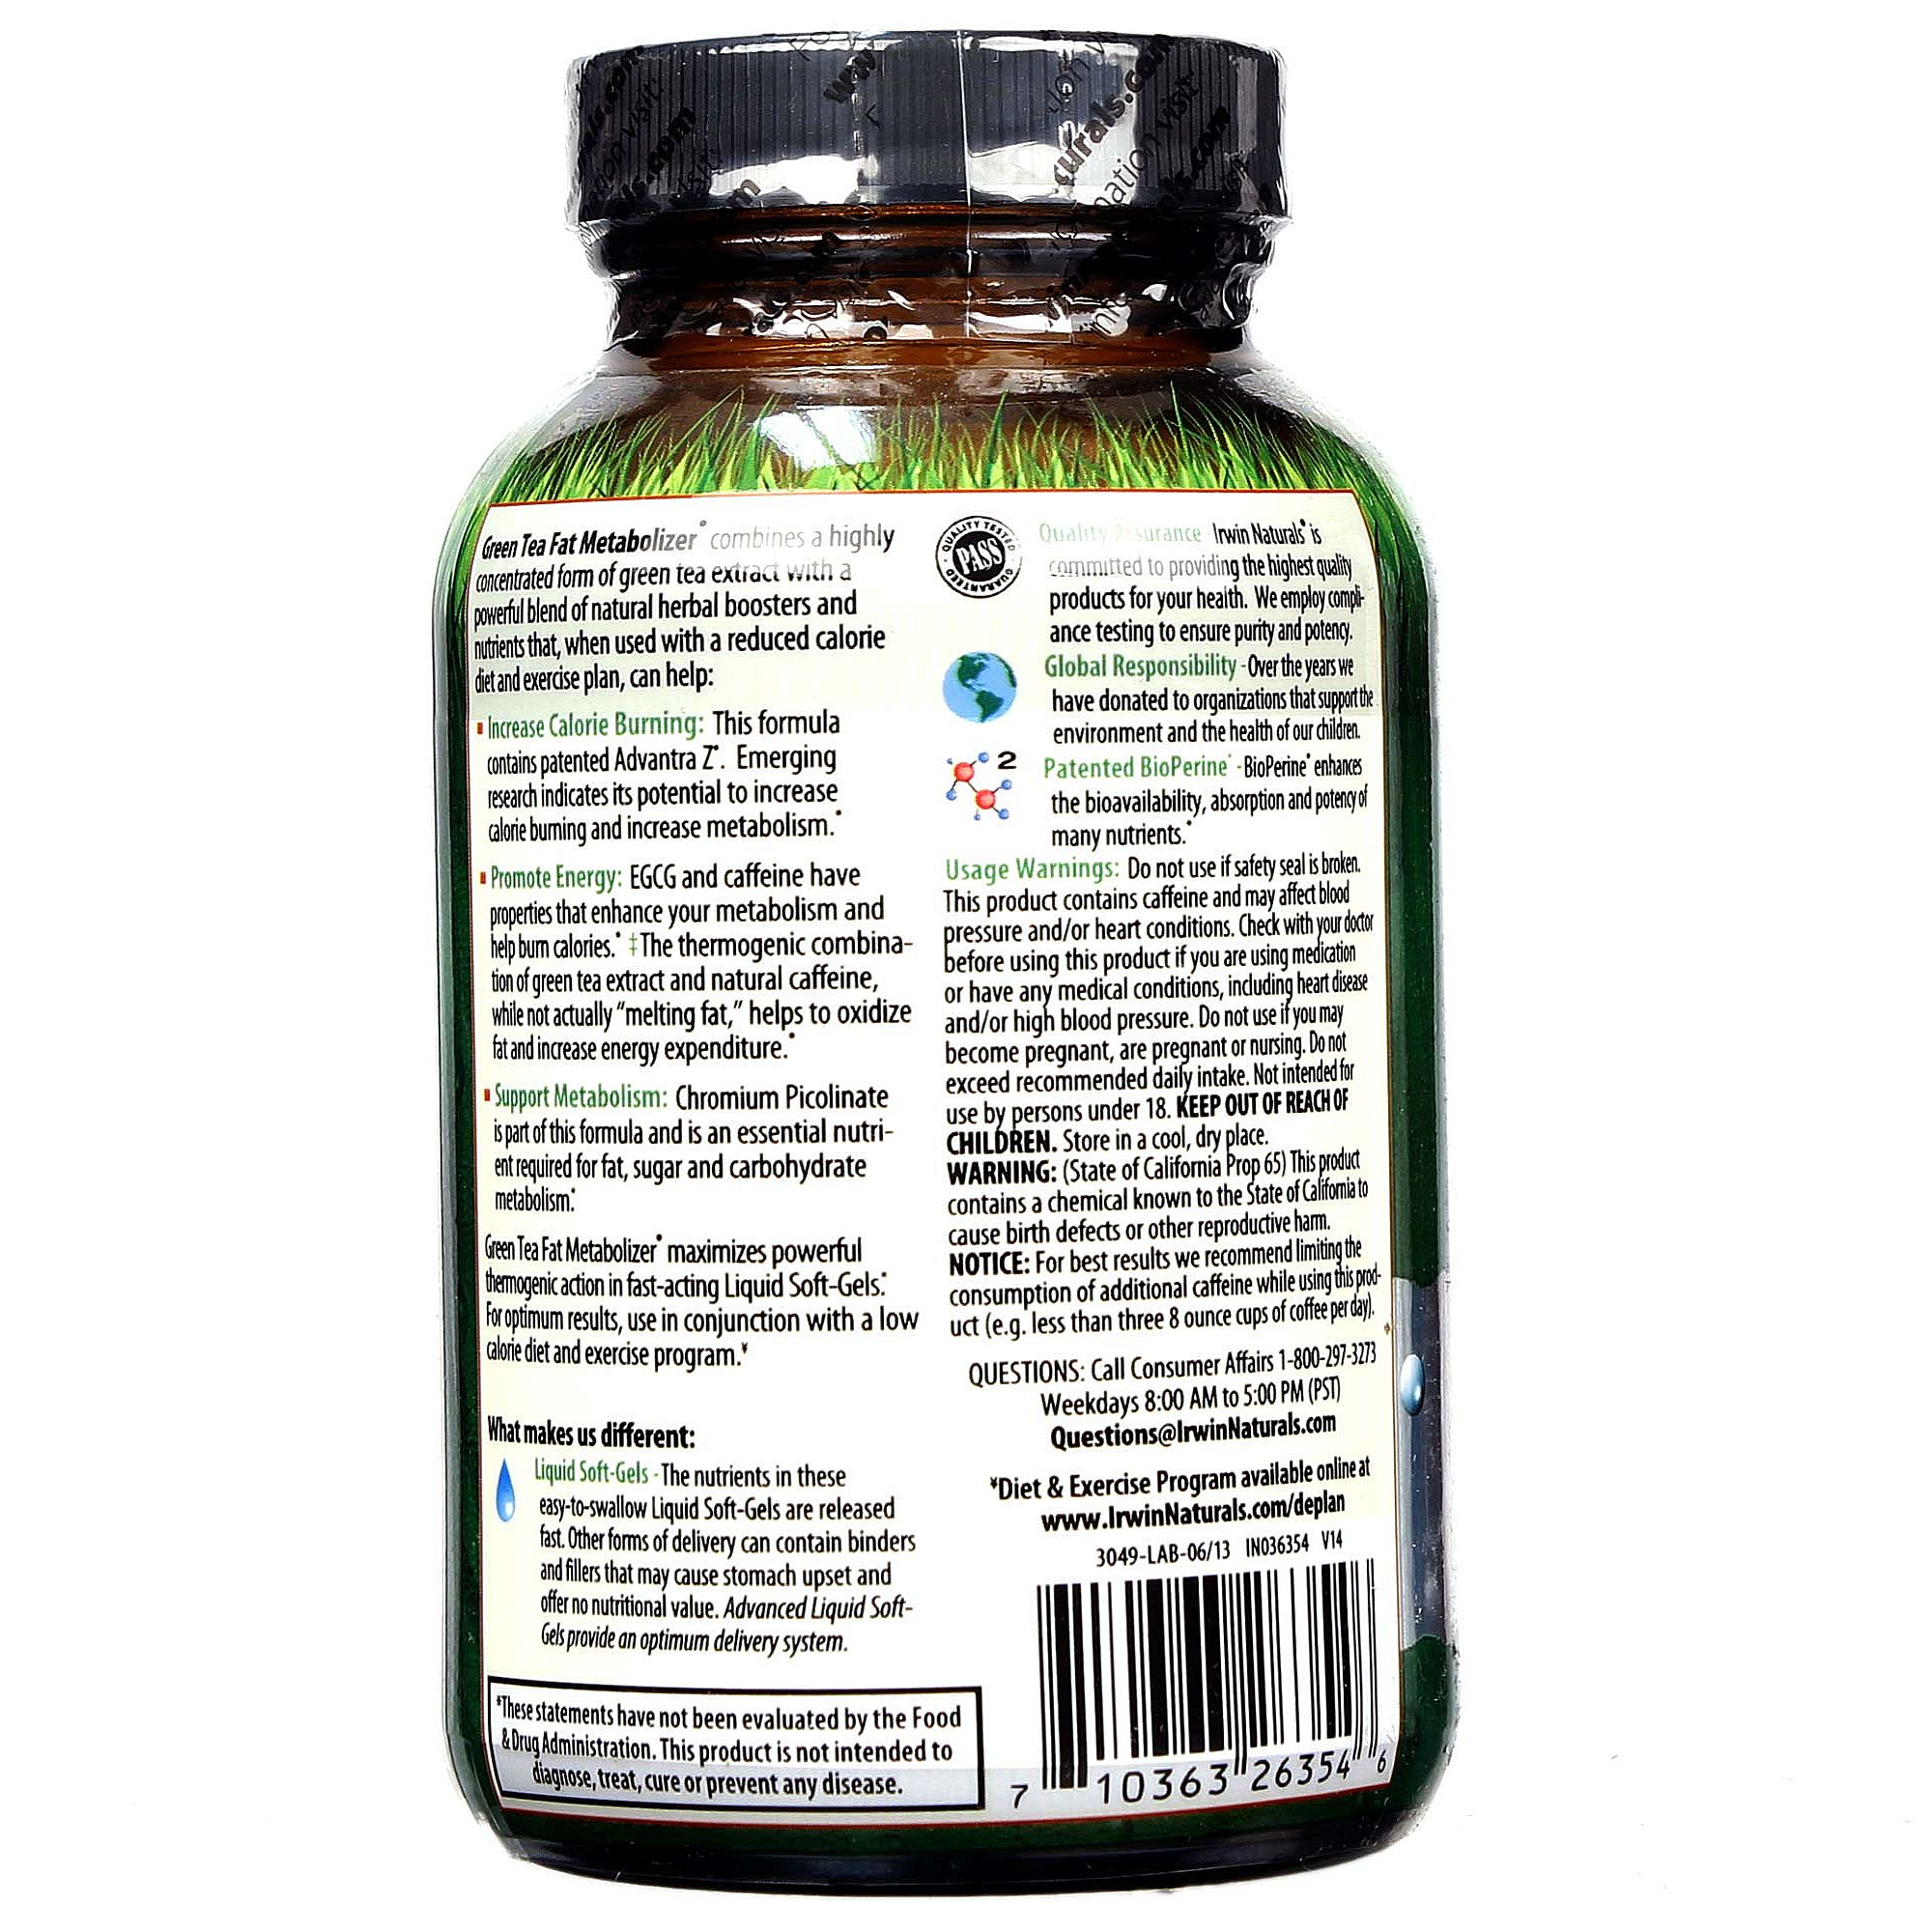 Weight loss pills fda approved 2012 image 8